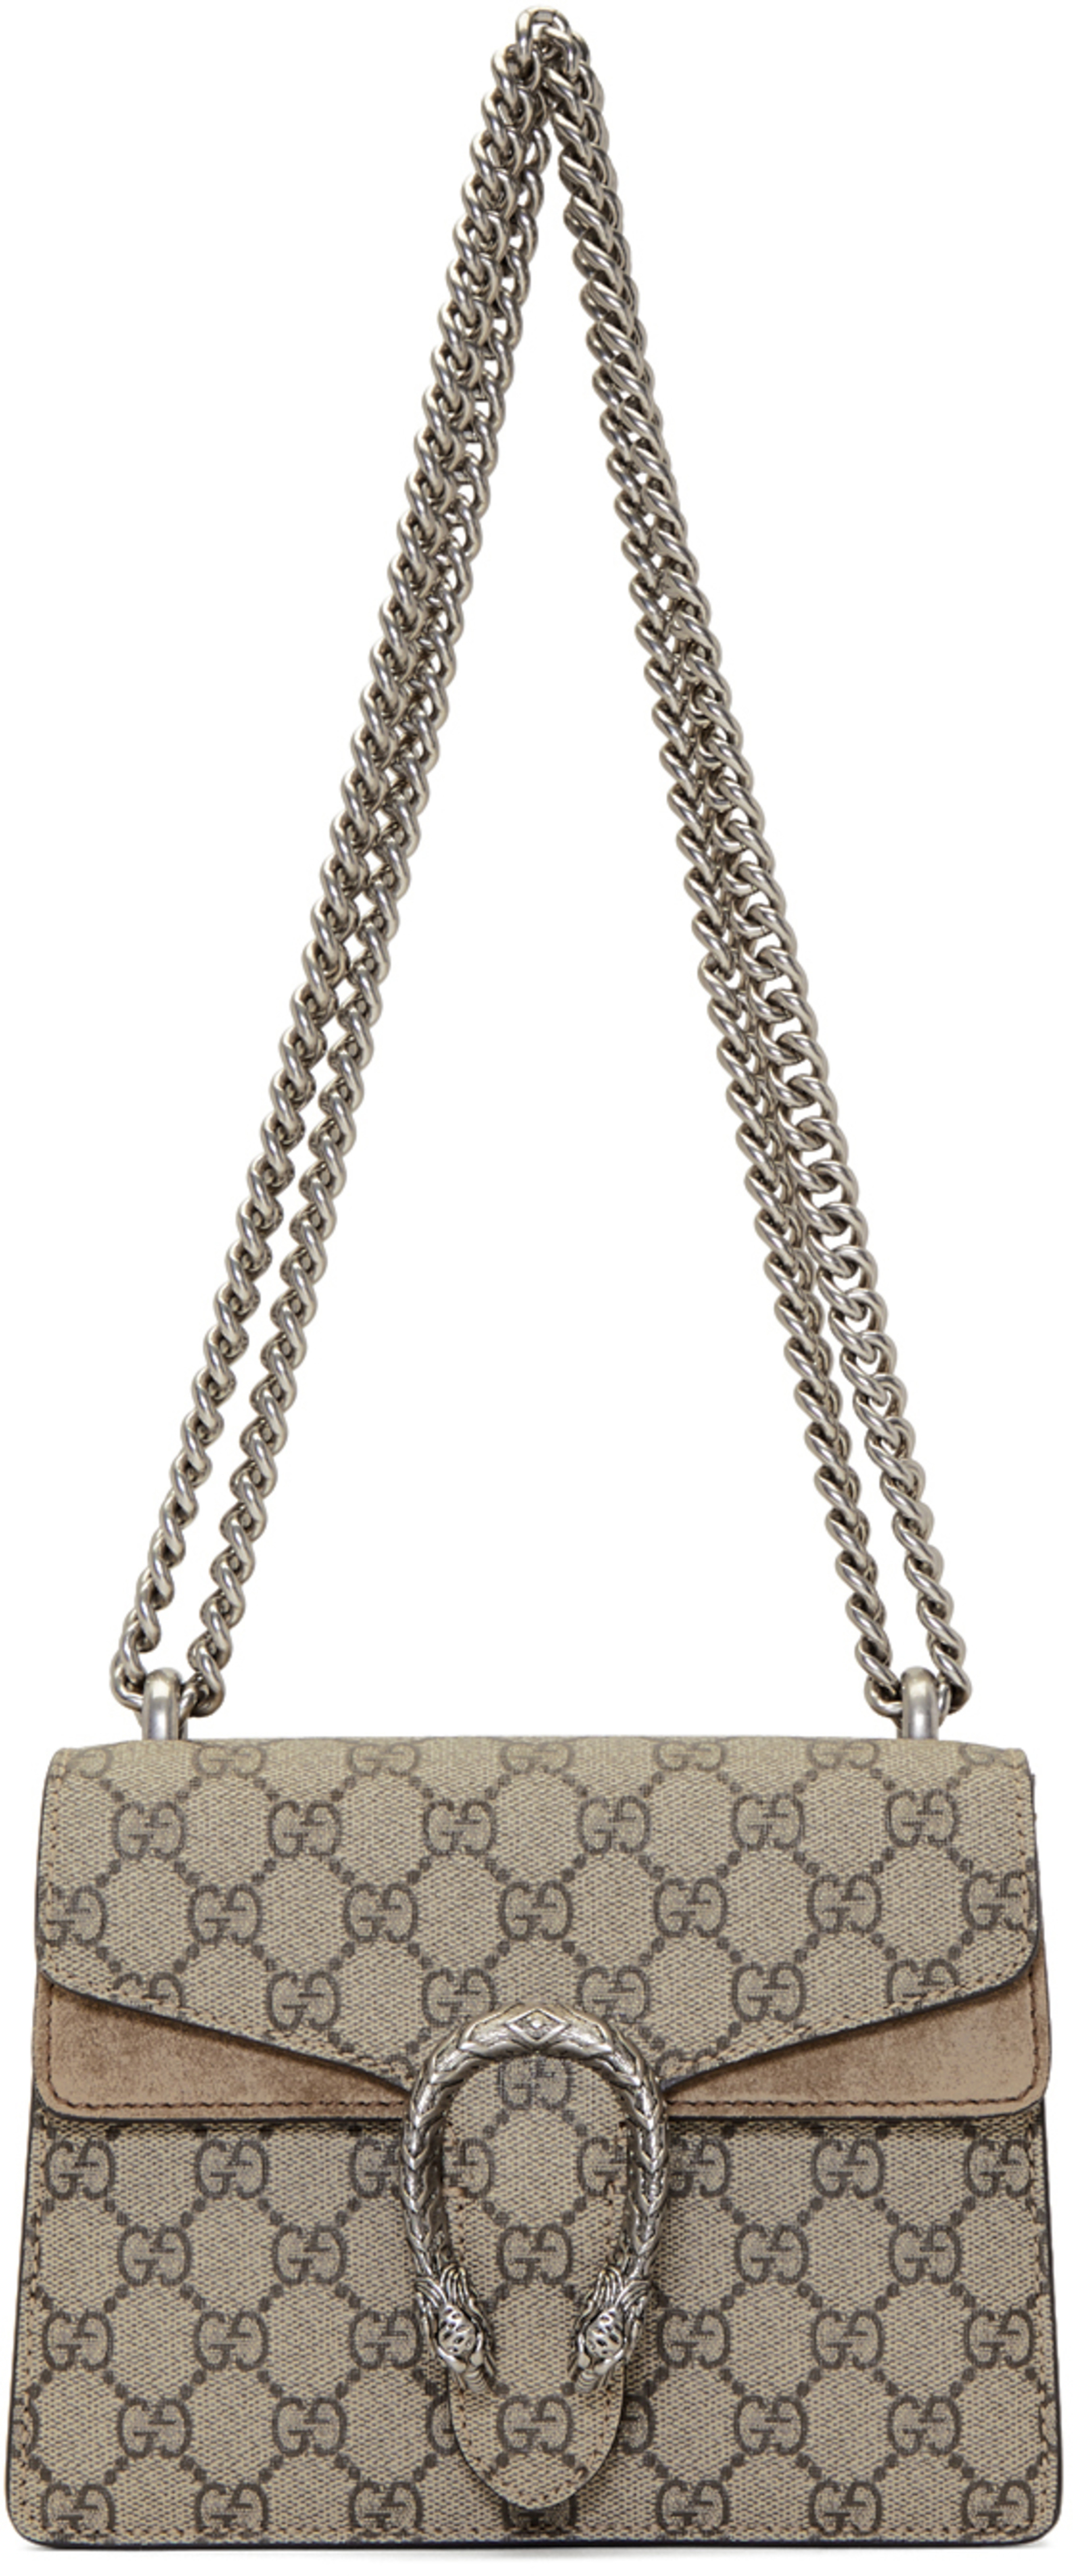 474aeee0f04 Gucci bags for Women   SSENSE